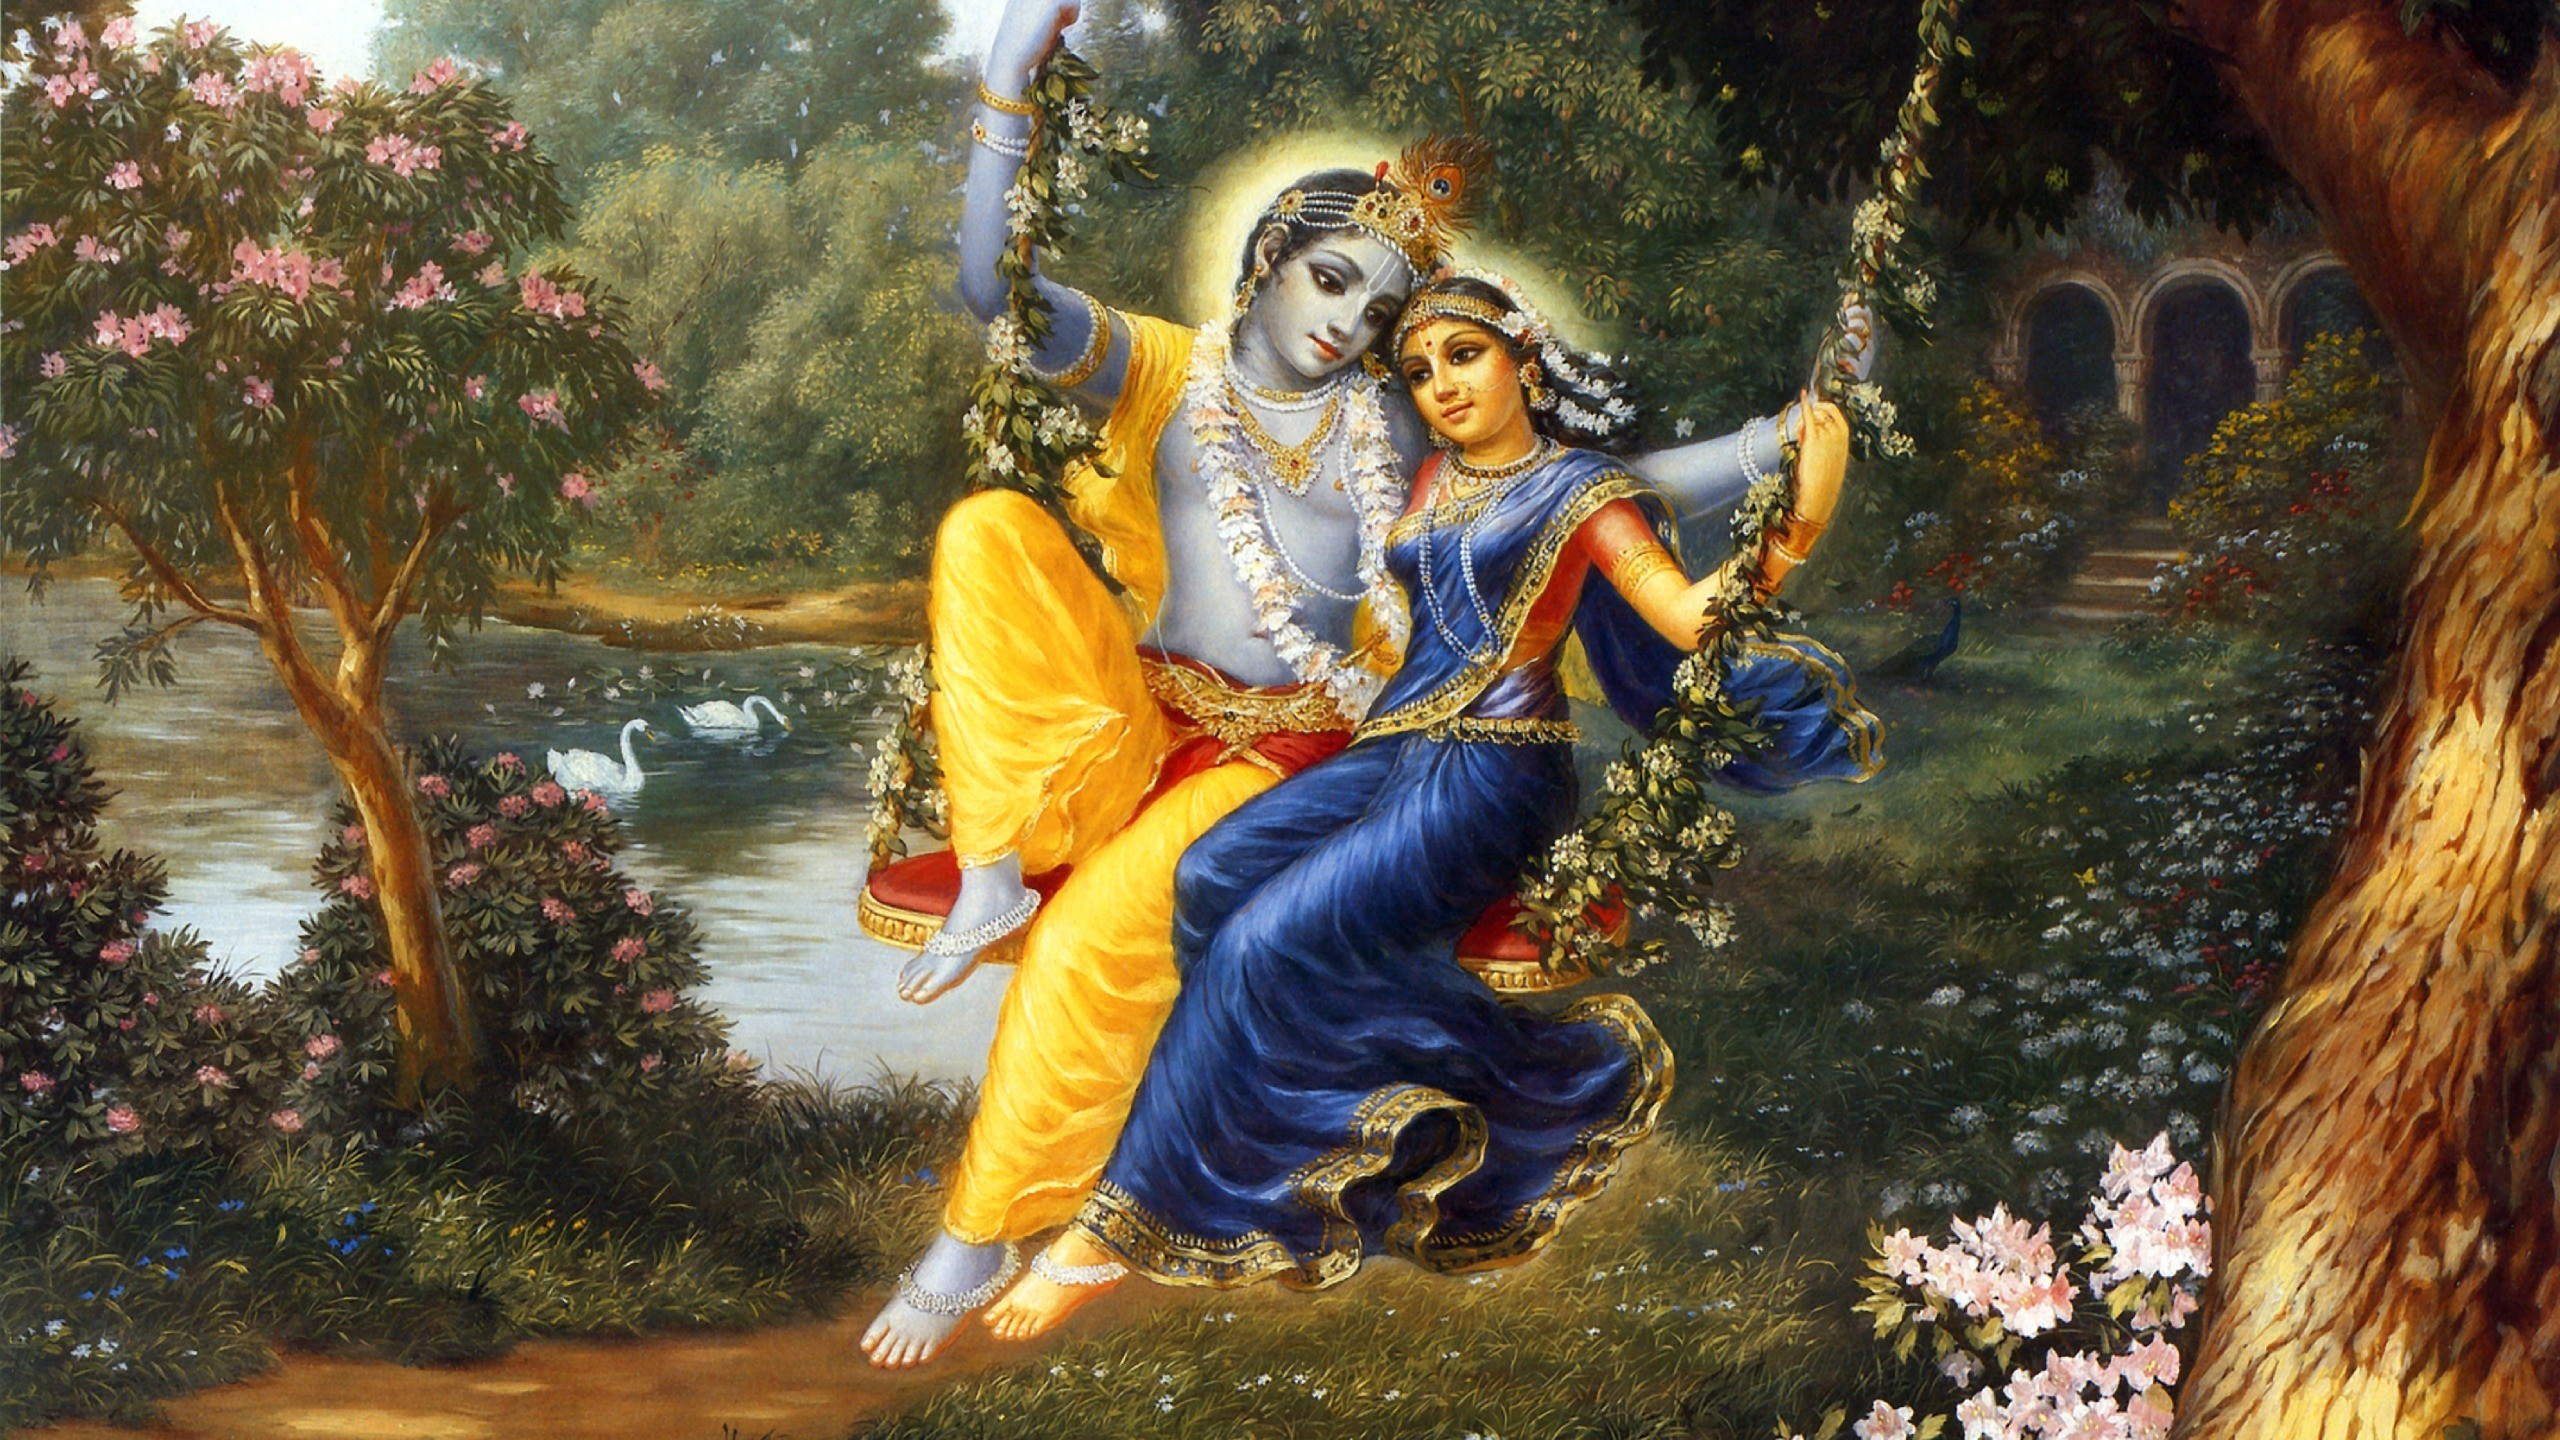 Radha Krishna Wallpaper Desktop Hd Wallpaper Download Free Image